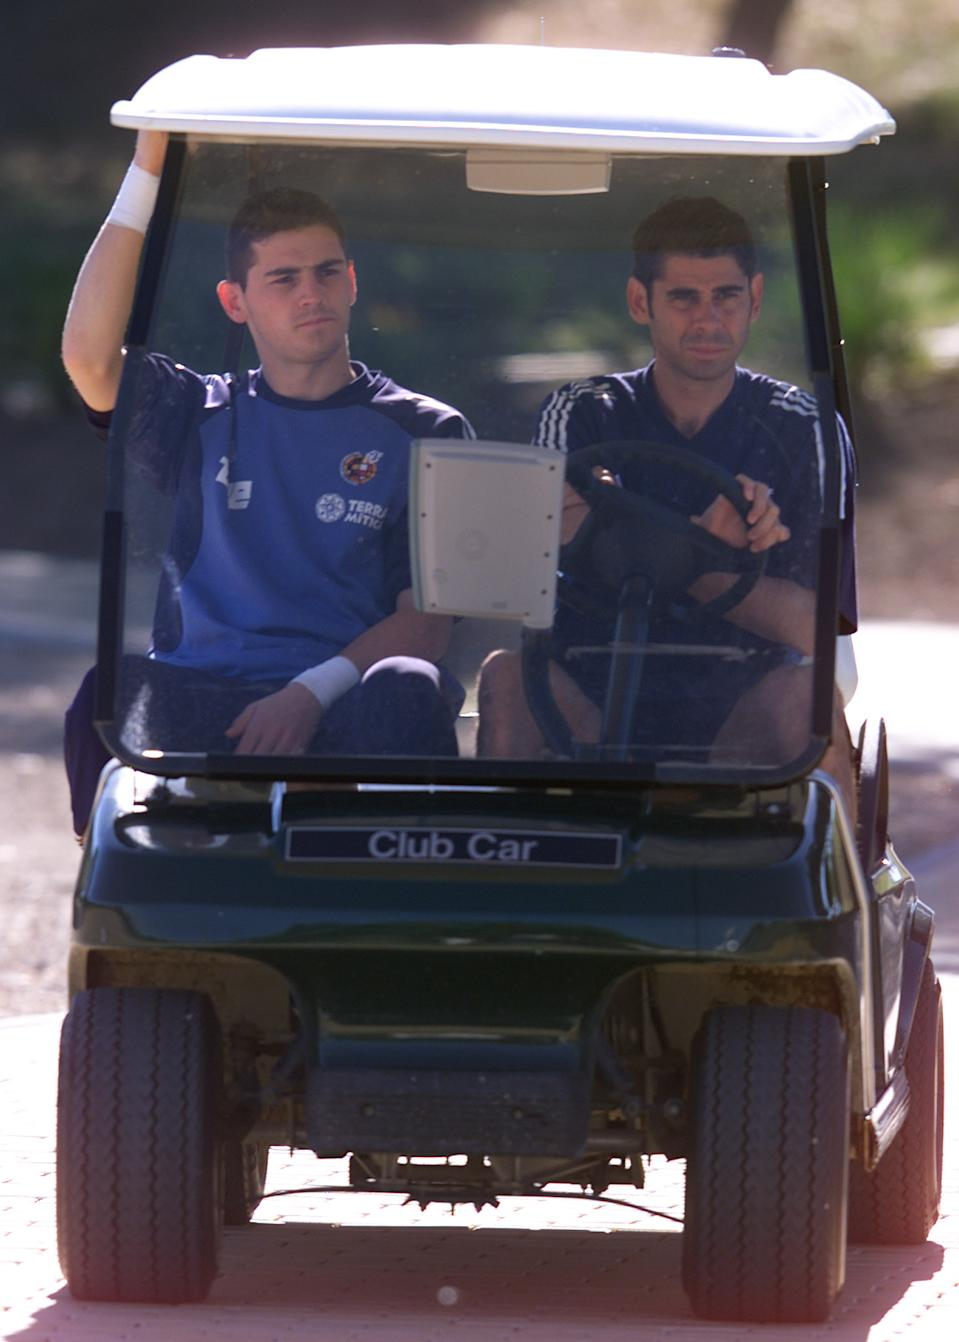 Iker Casillas(L) and Fernando Hierro of the Spanish national soccer  team travel by golf cart to a warm-up session at Montecastillo training  ground near Jerez, May 19, 2002. Spain are preparing for the World Cup  finals in Korea and Japan. REUTERS/Marcelo del Pozo    MDP/CLH/